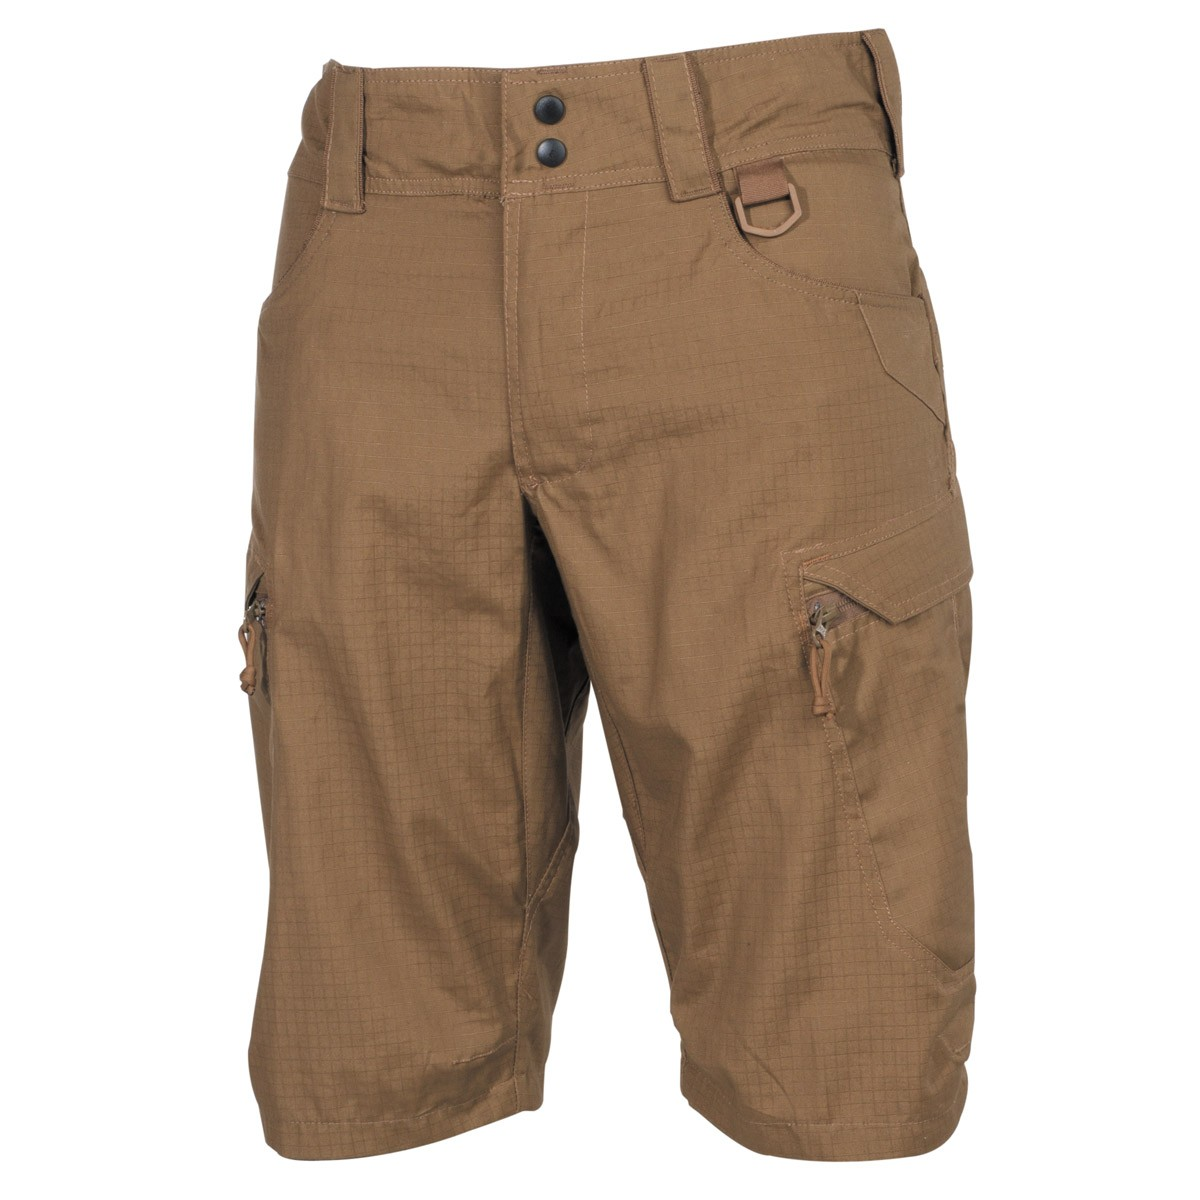 "Professional Tactical Military Battle Army Shorts ""Defense"" Rip Stop - Coyote"